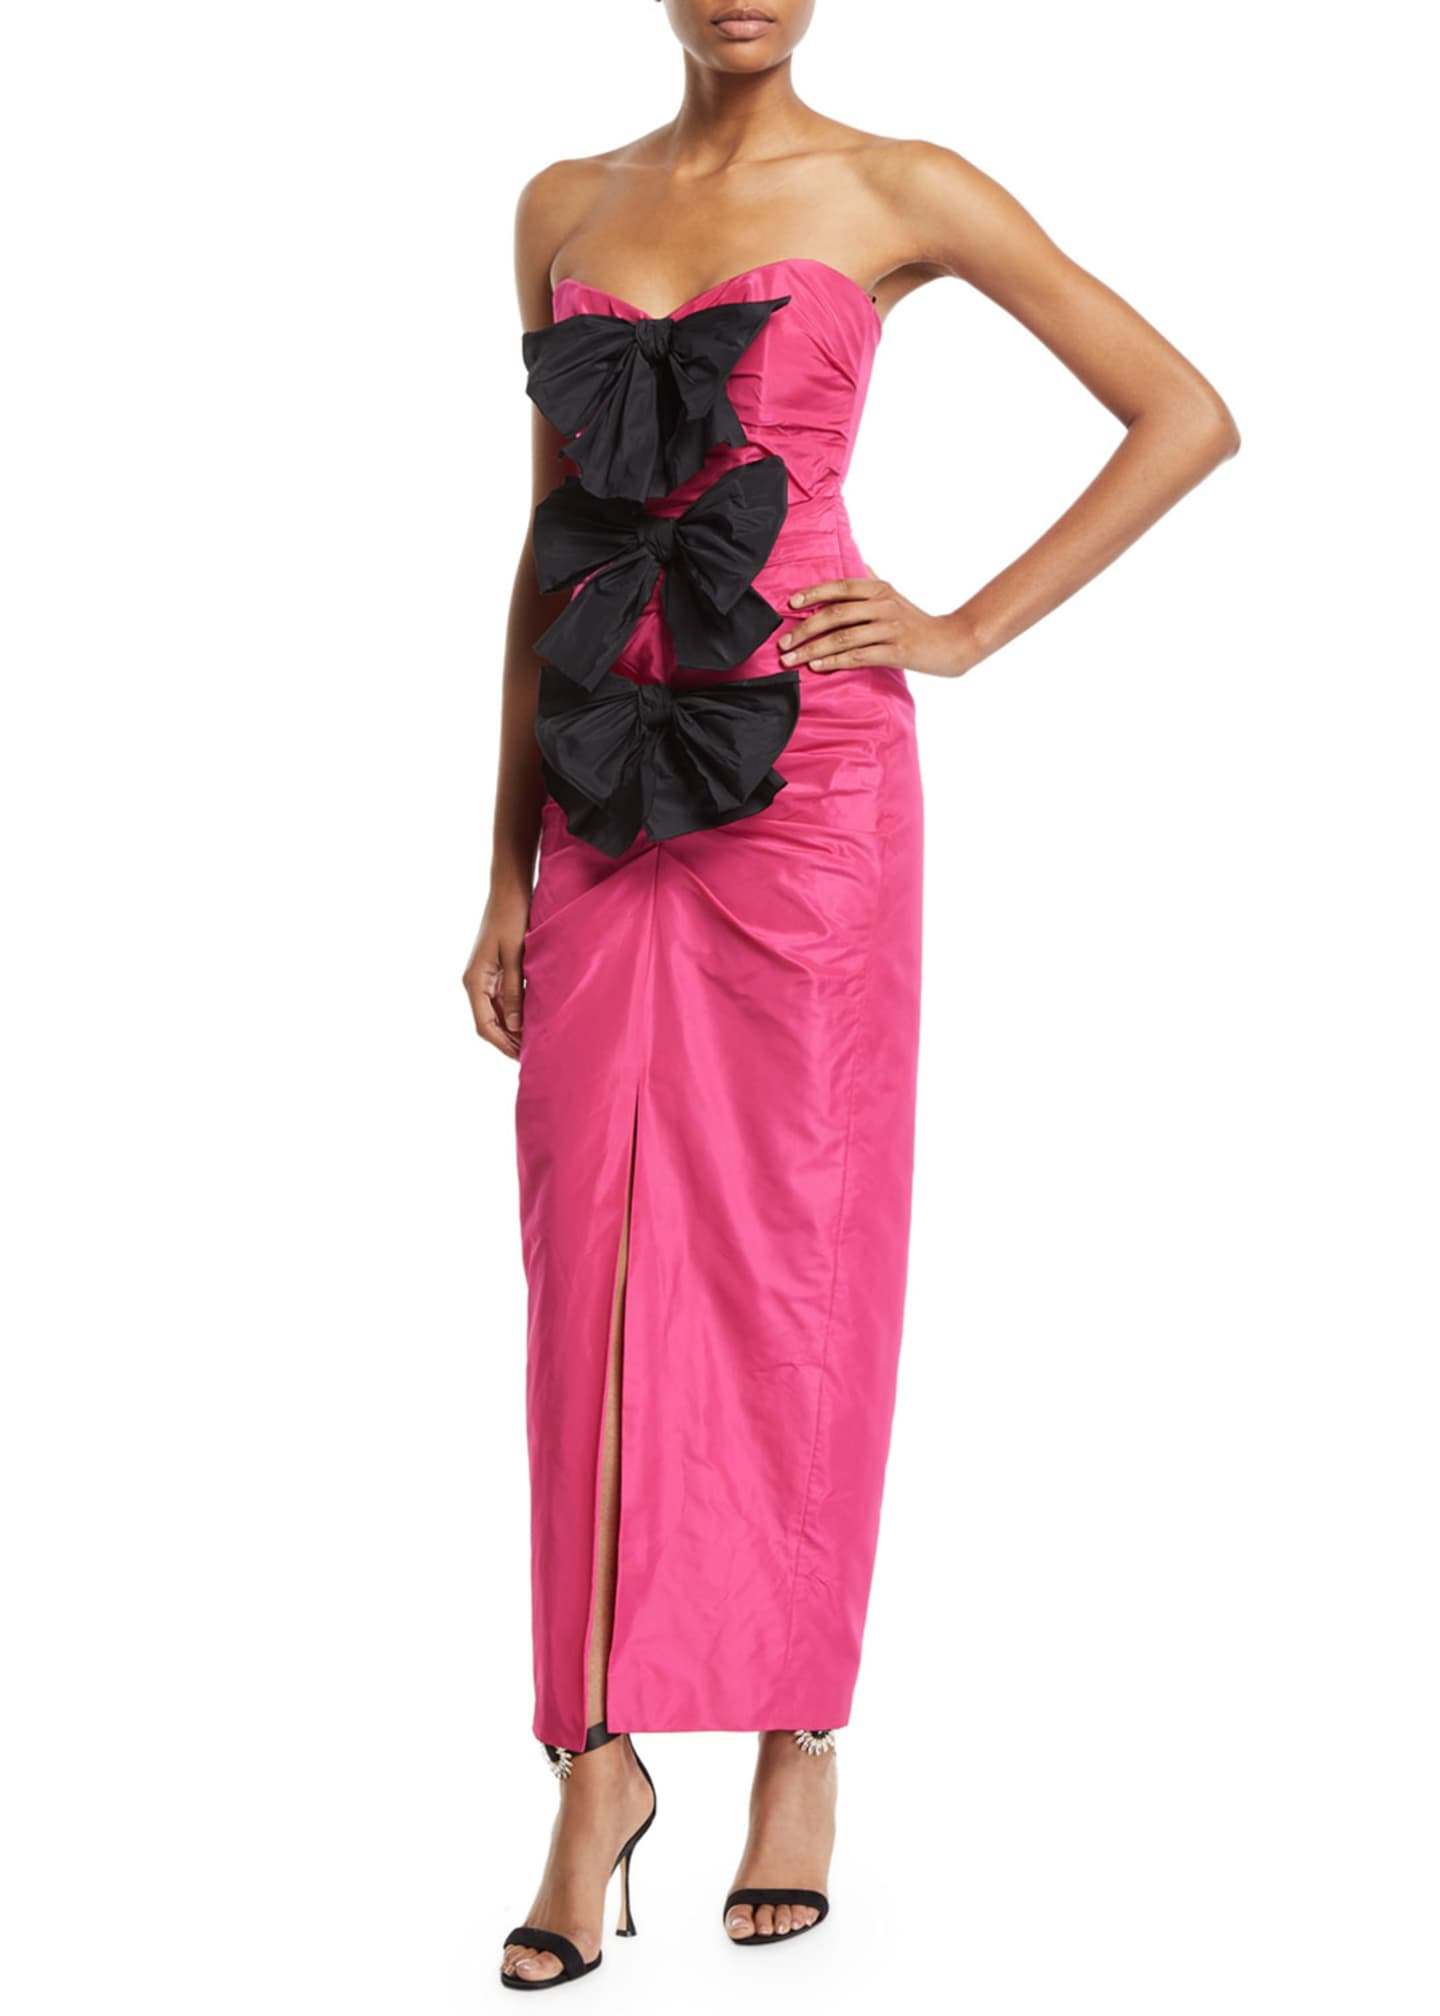 Carmen March Bowed Strapless Taffeta Gown